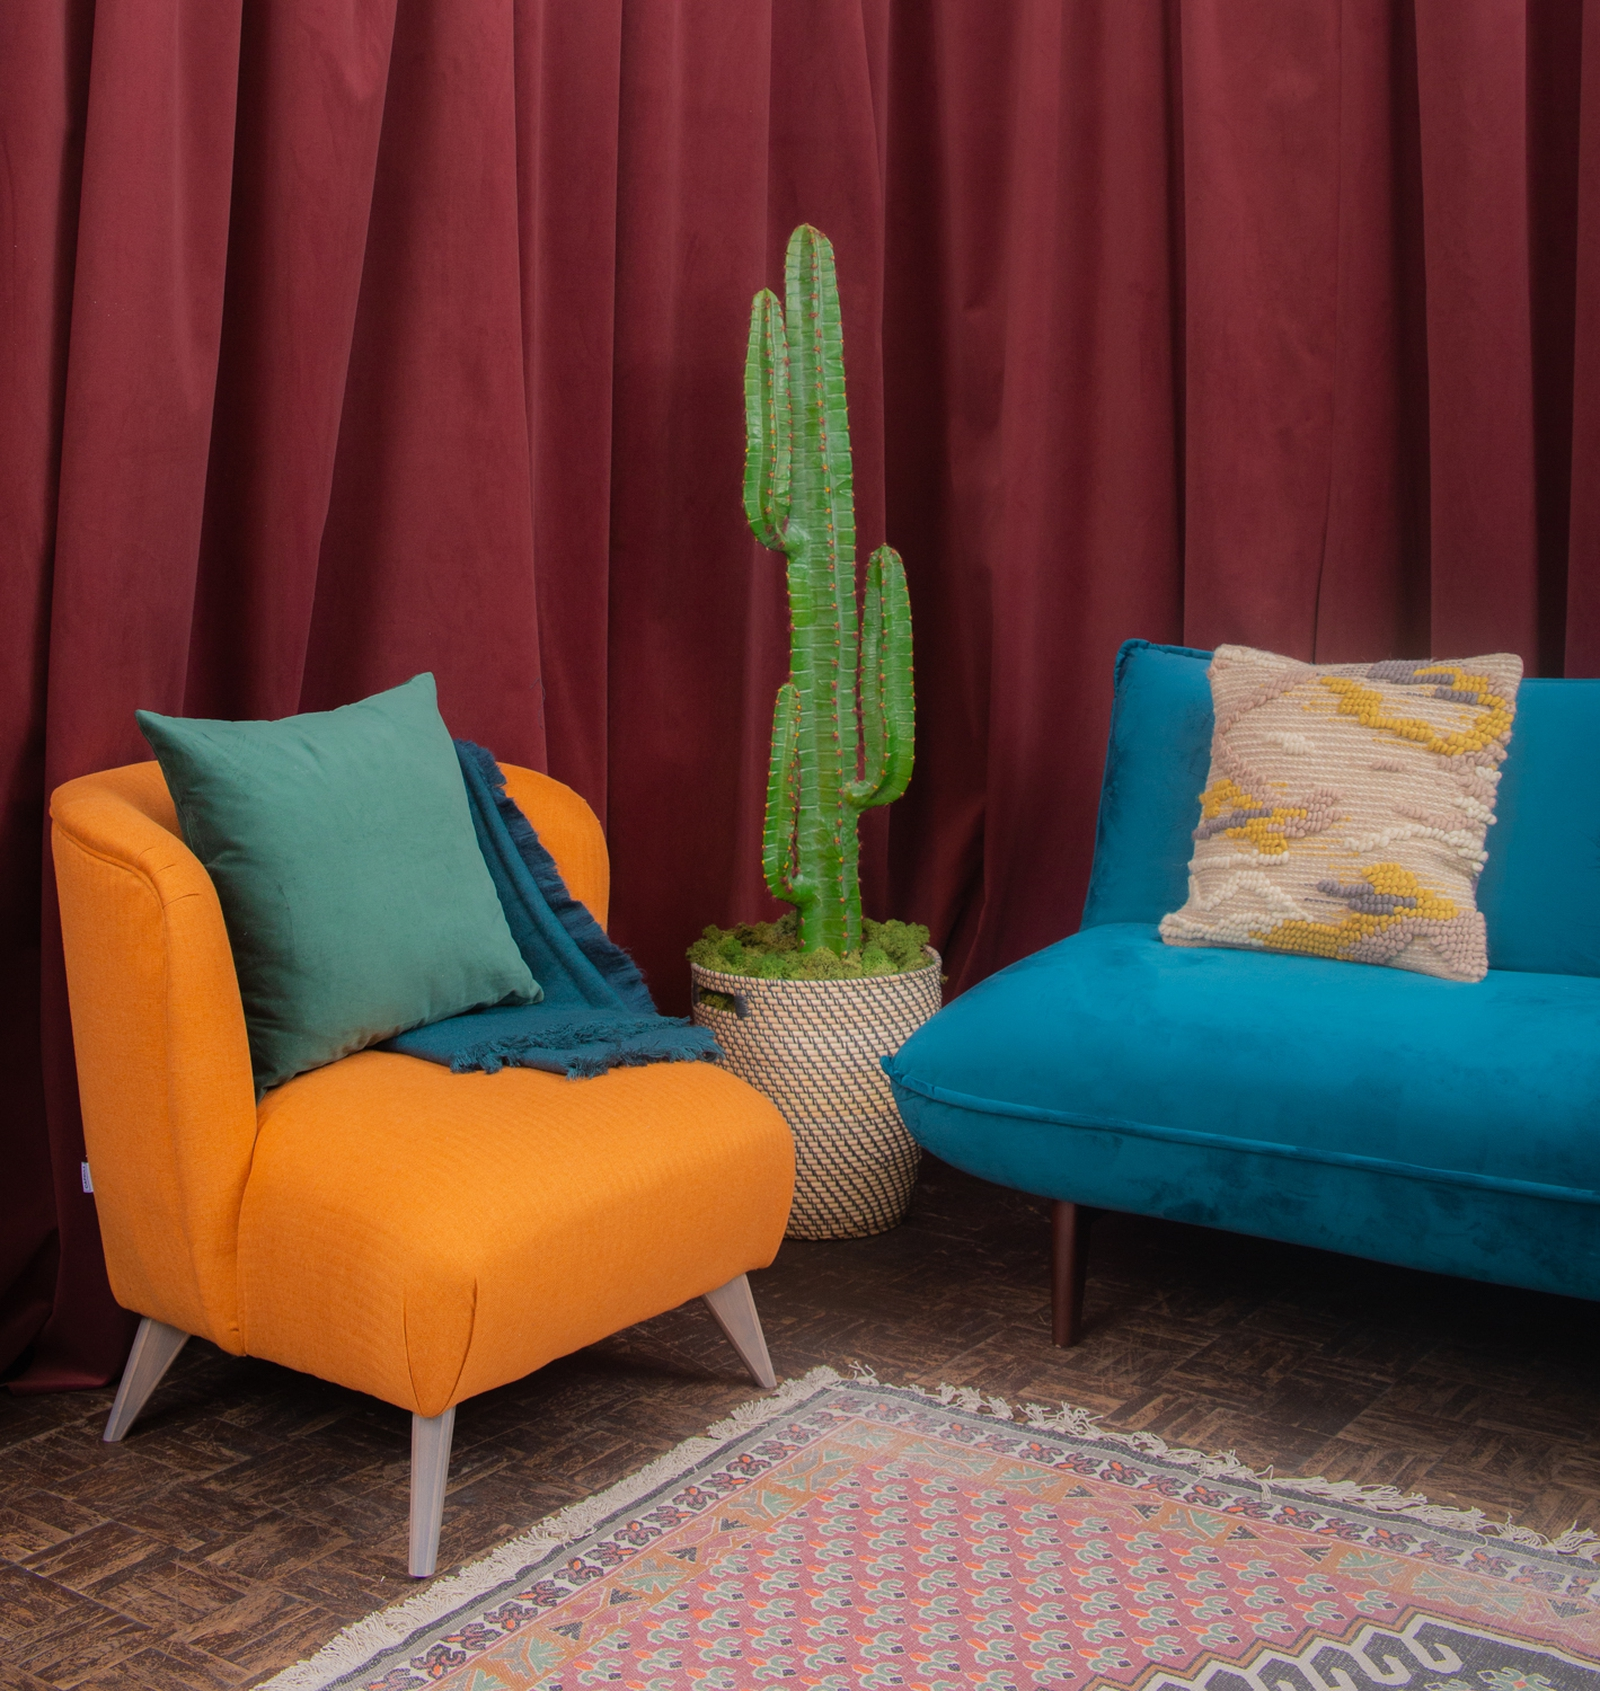 Image - Rustic Comfort featured jewel tones and Mid-Western inffluences